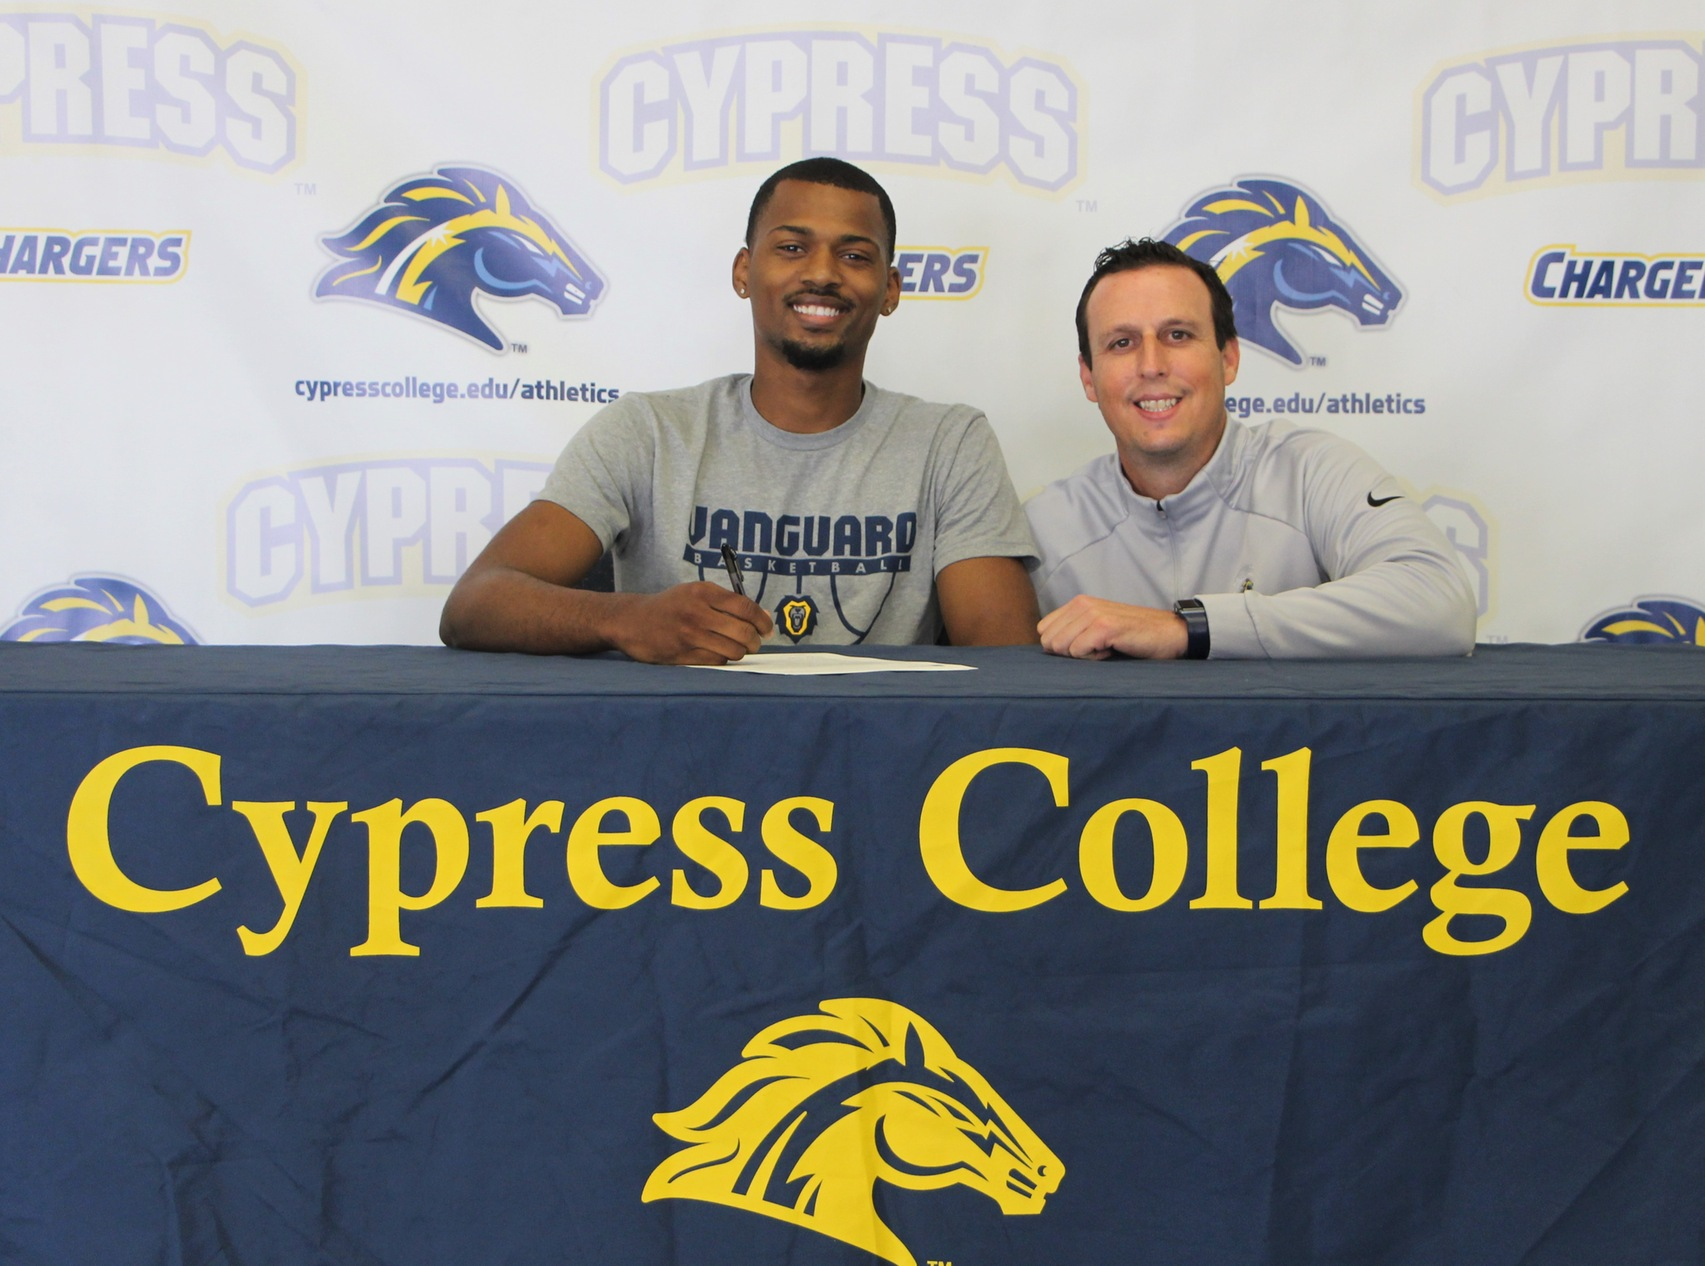 Mike Magee and Cypress College Men's Basketball Coach Drew Alhadeff